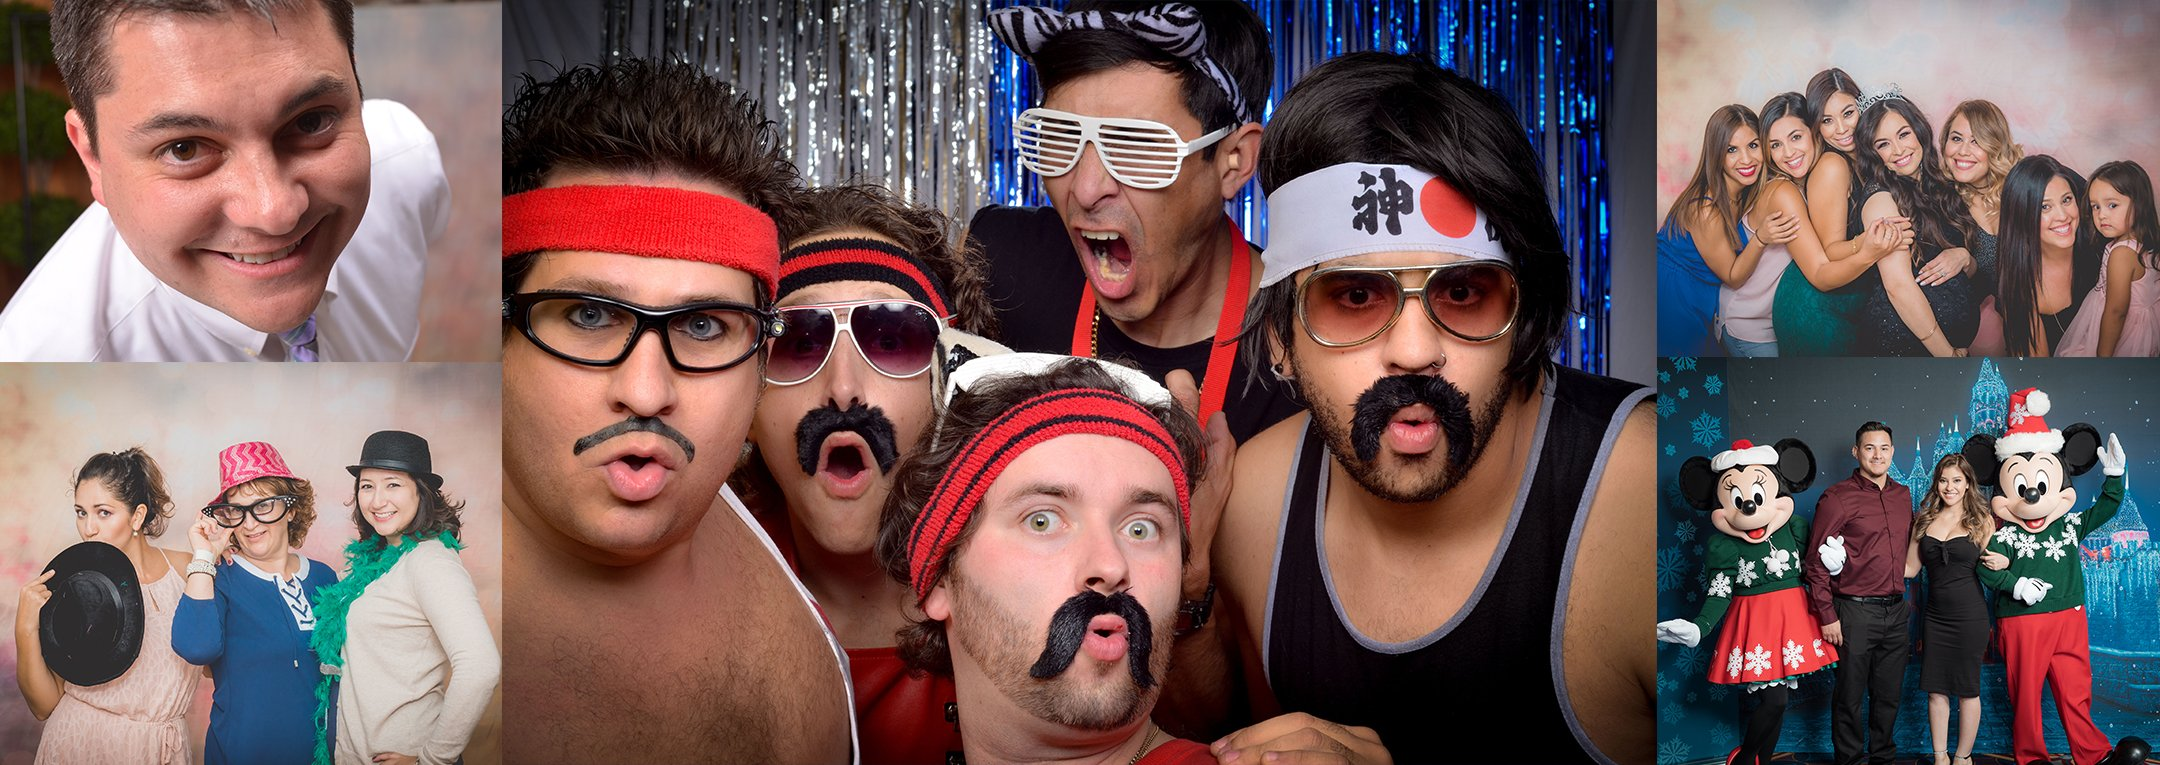 5 Example photos of the photo booth service